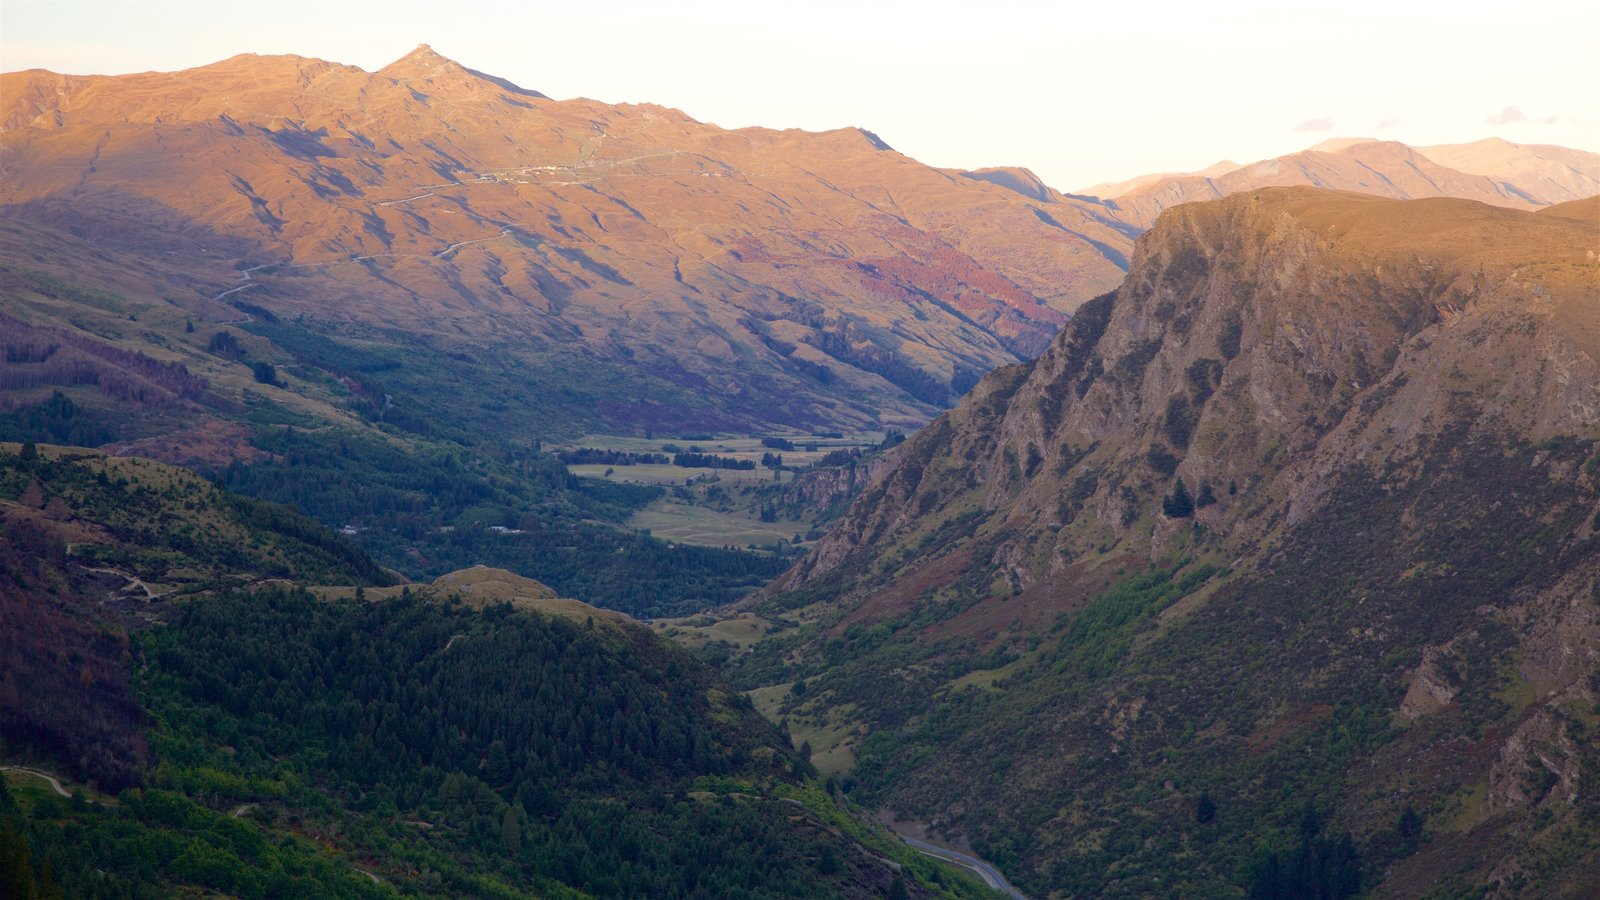 Queenstown featuring mountains and a sunset